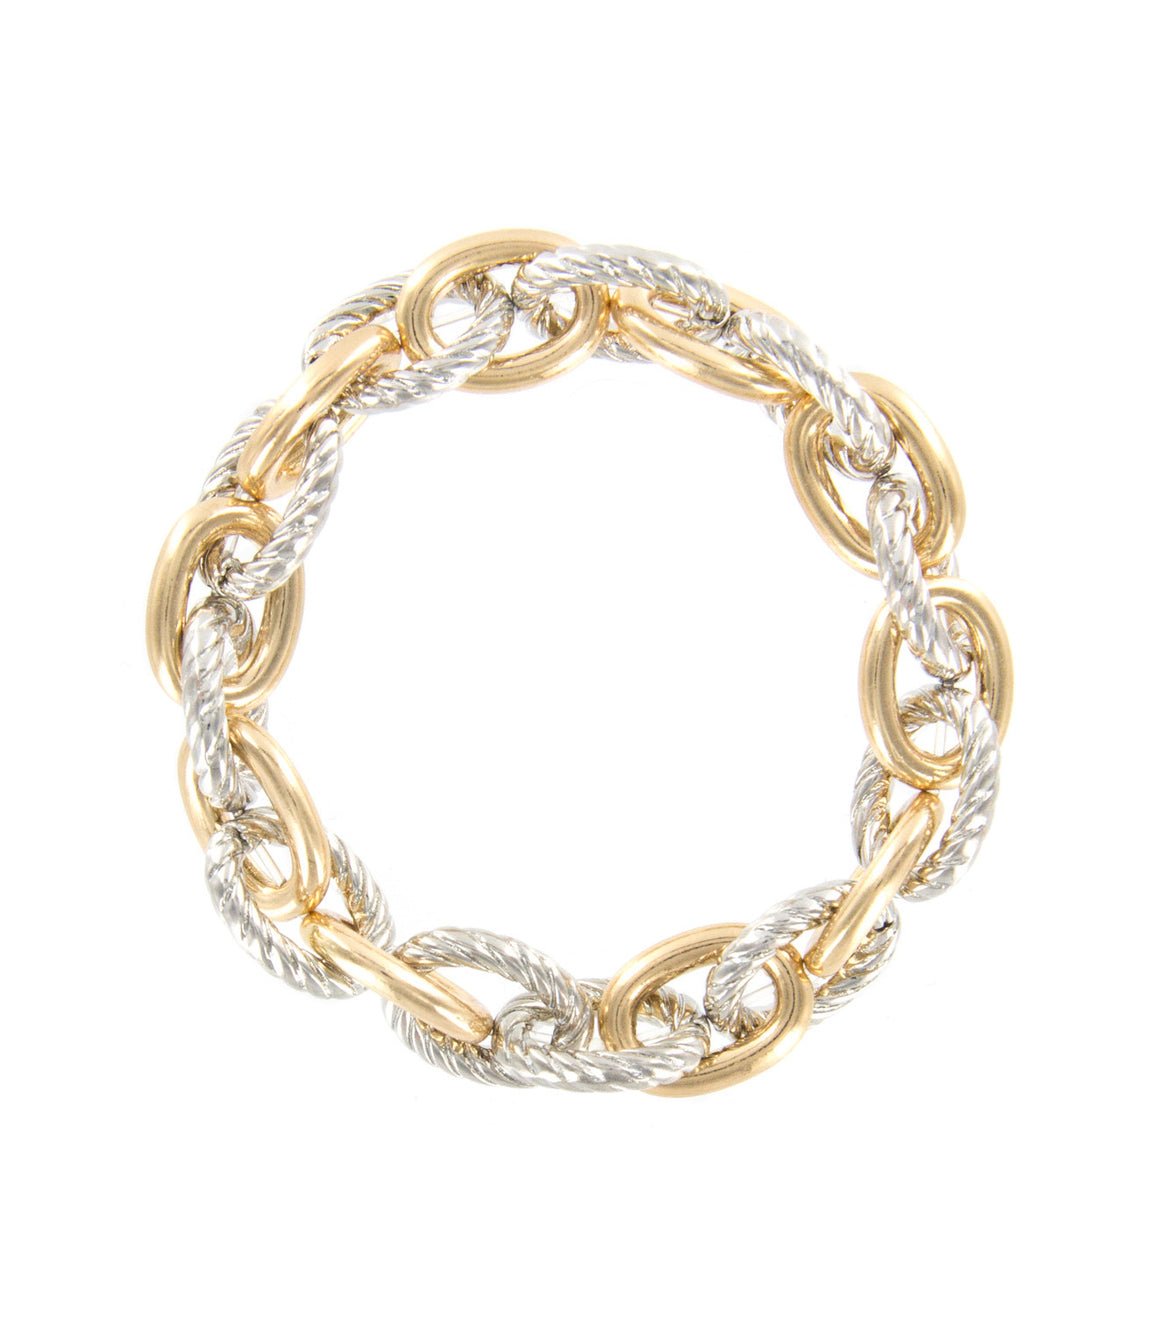 Twisted link chain stretch mixed metal bracelet.